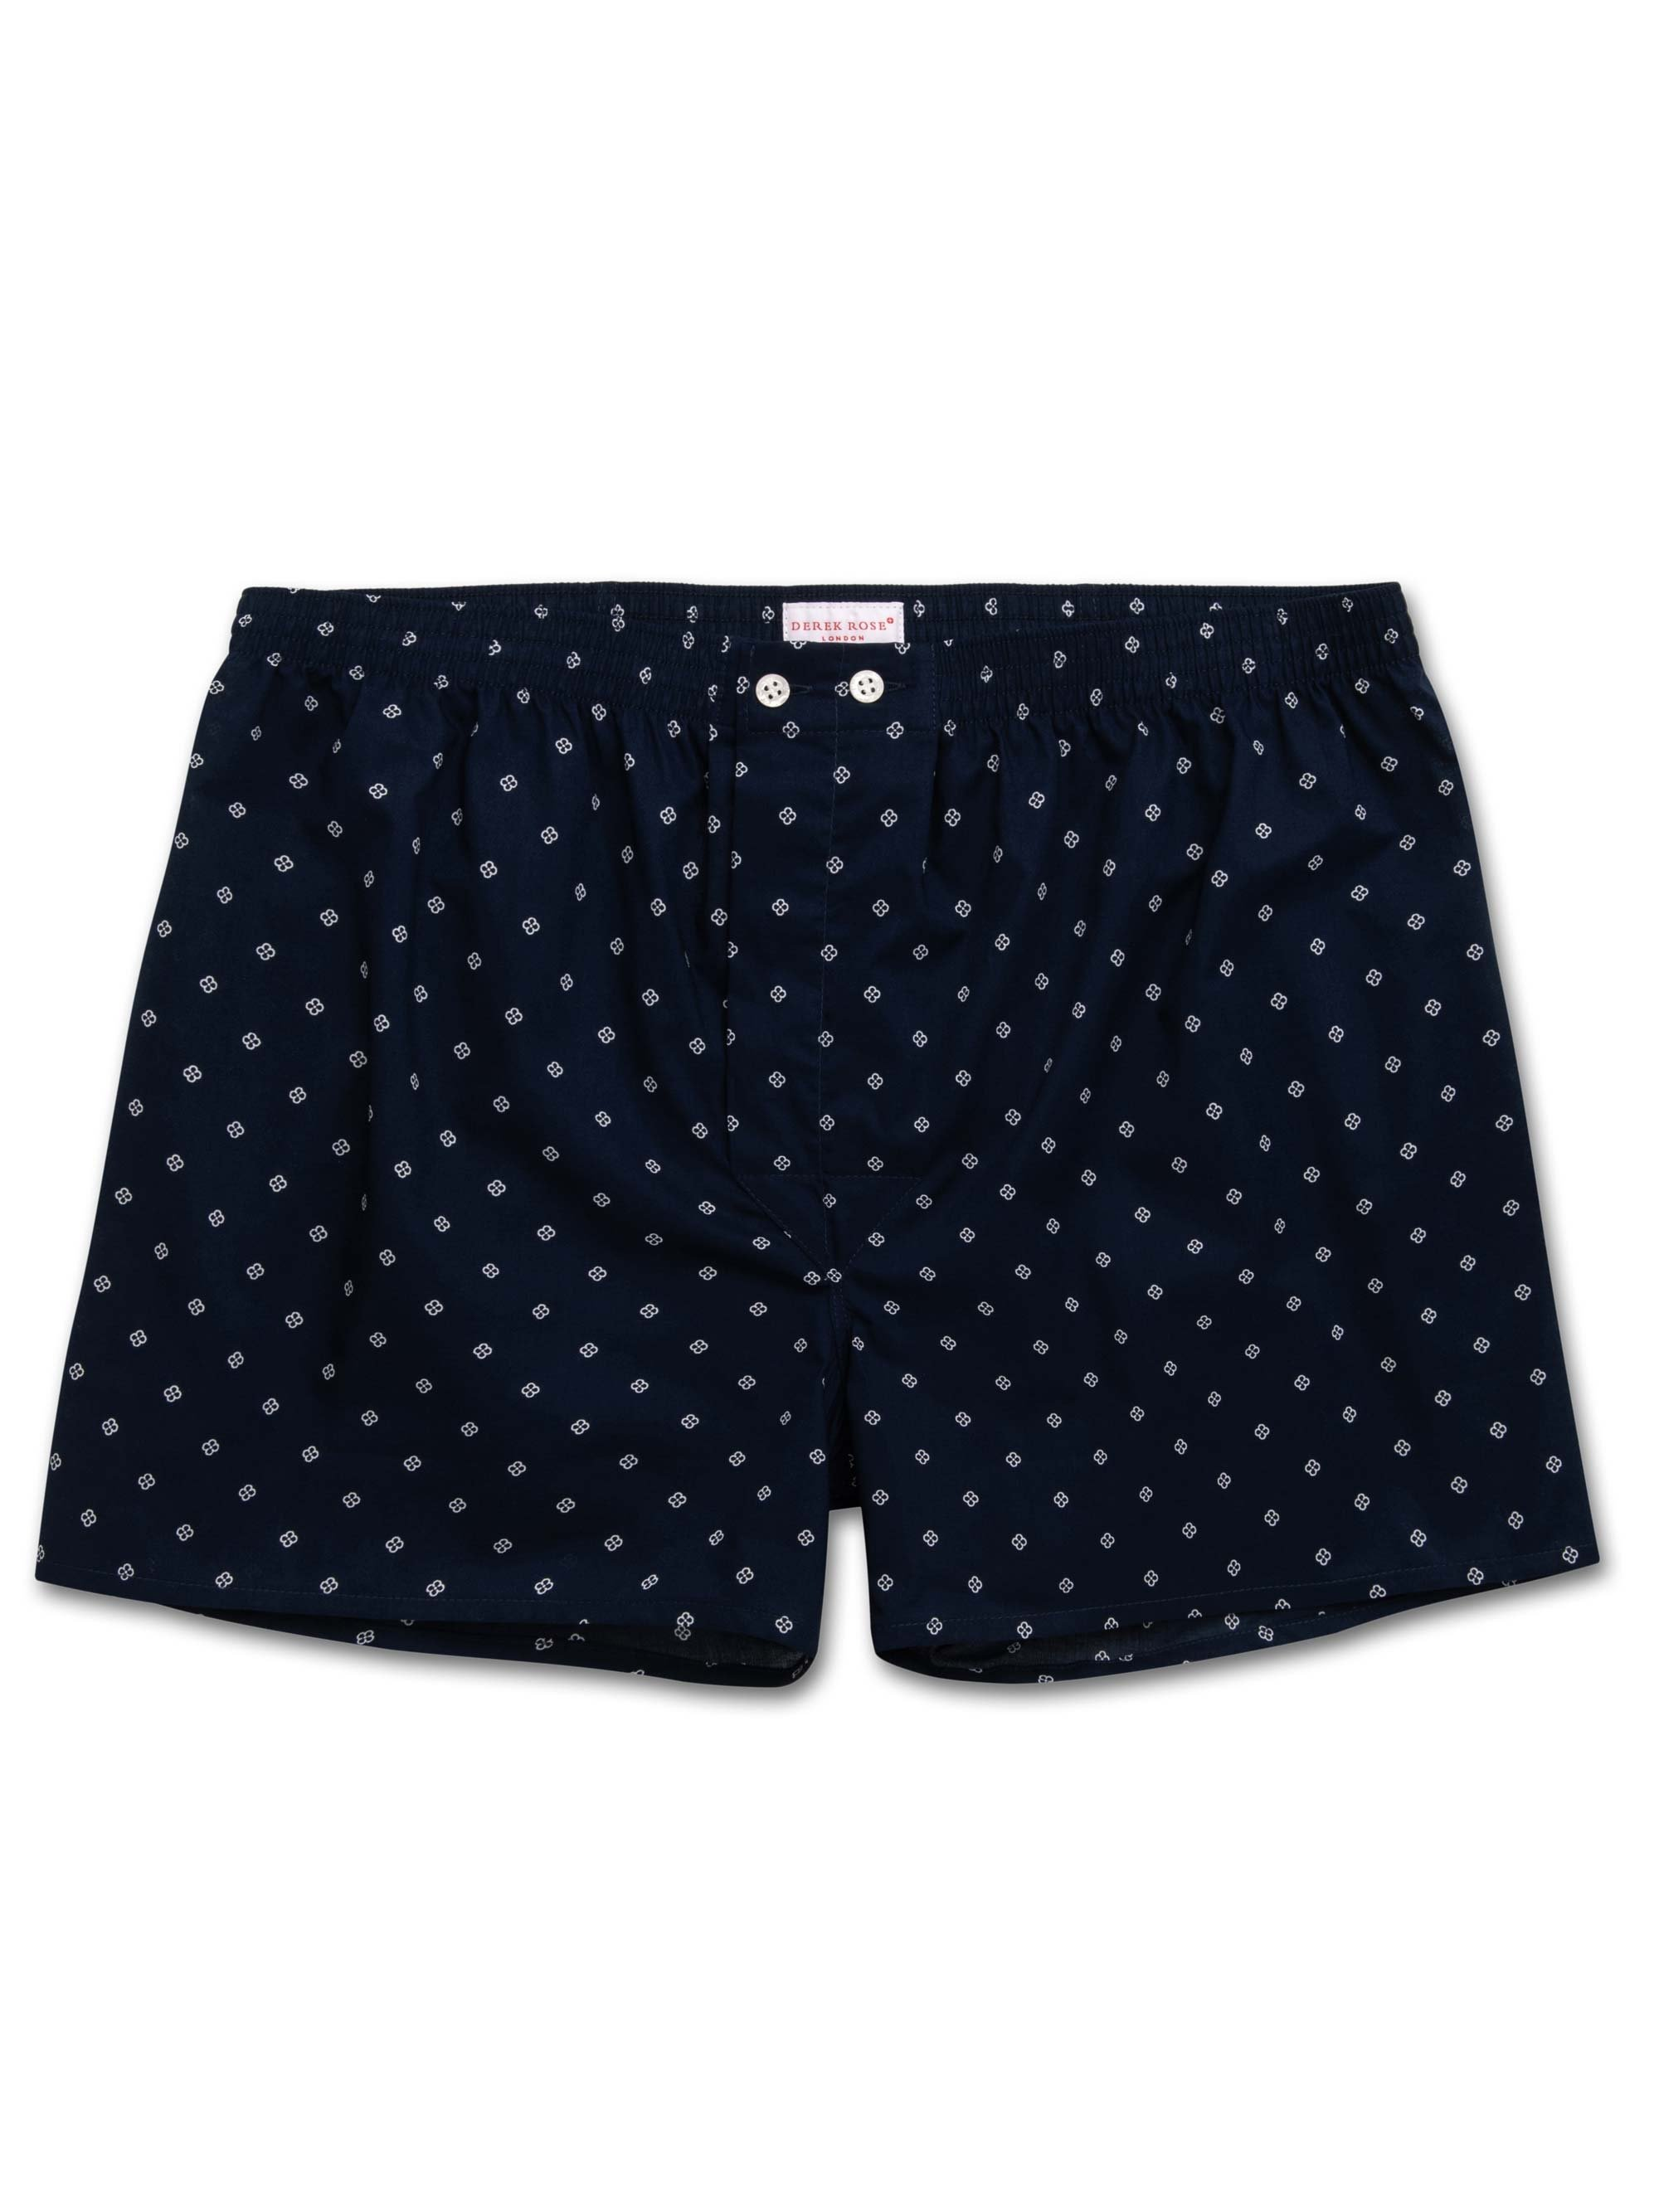 Men's Classic Fit Boxer Shorts Nelson 71 Cotton Batiste Navy